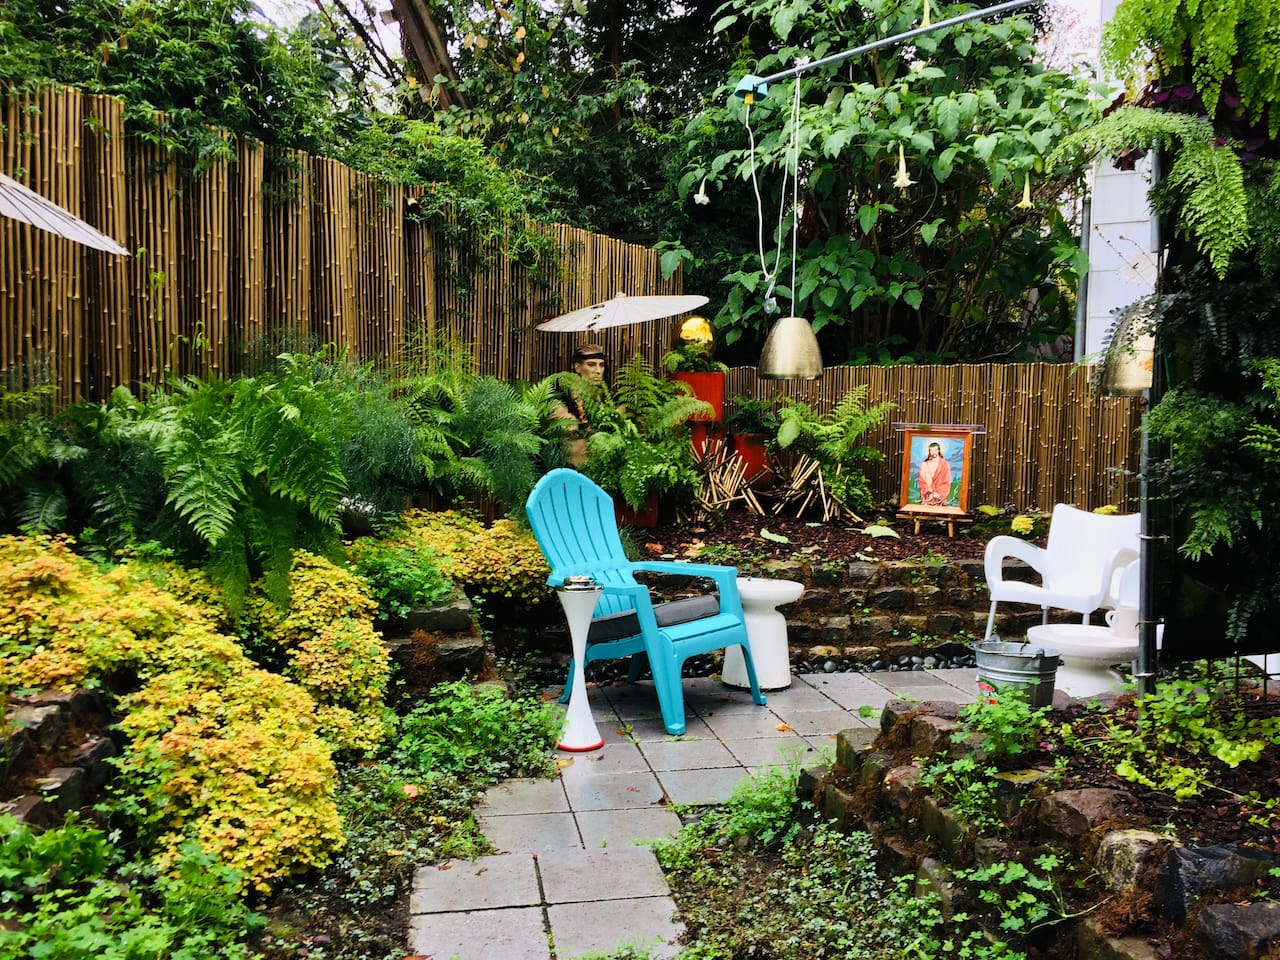 Welcome to Little Paradise, the garden at Casa Linda